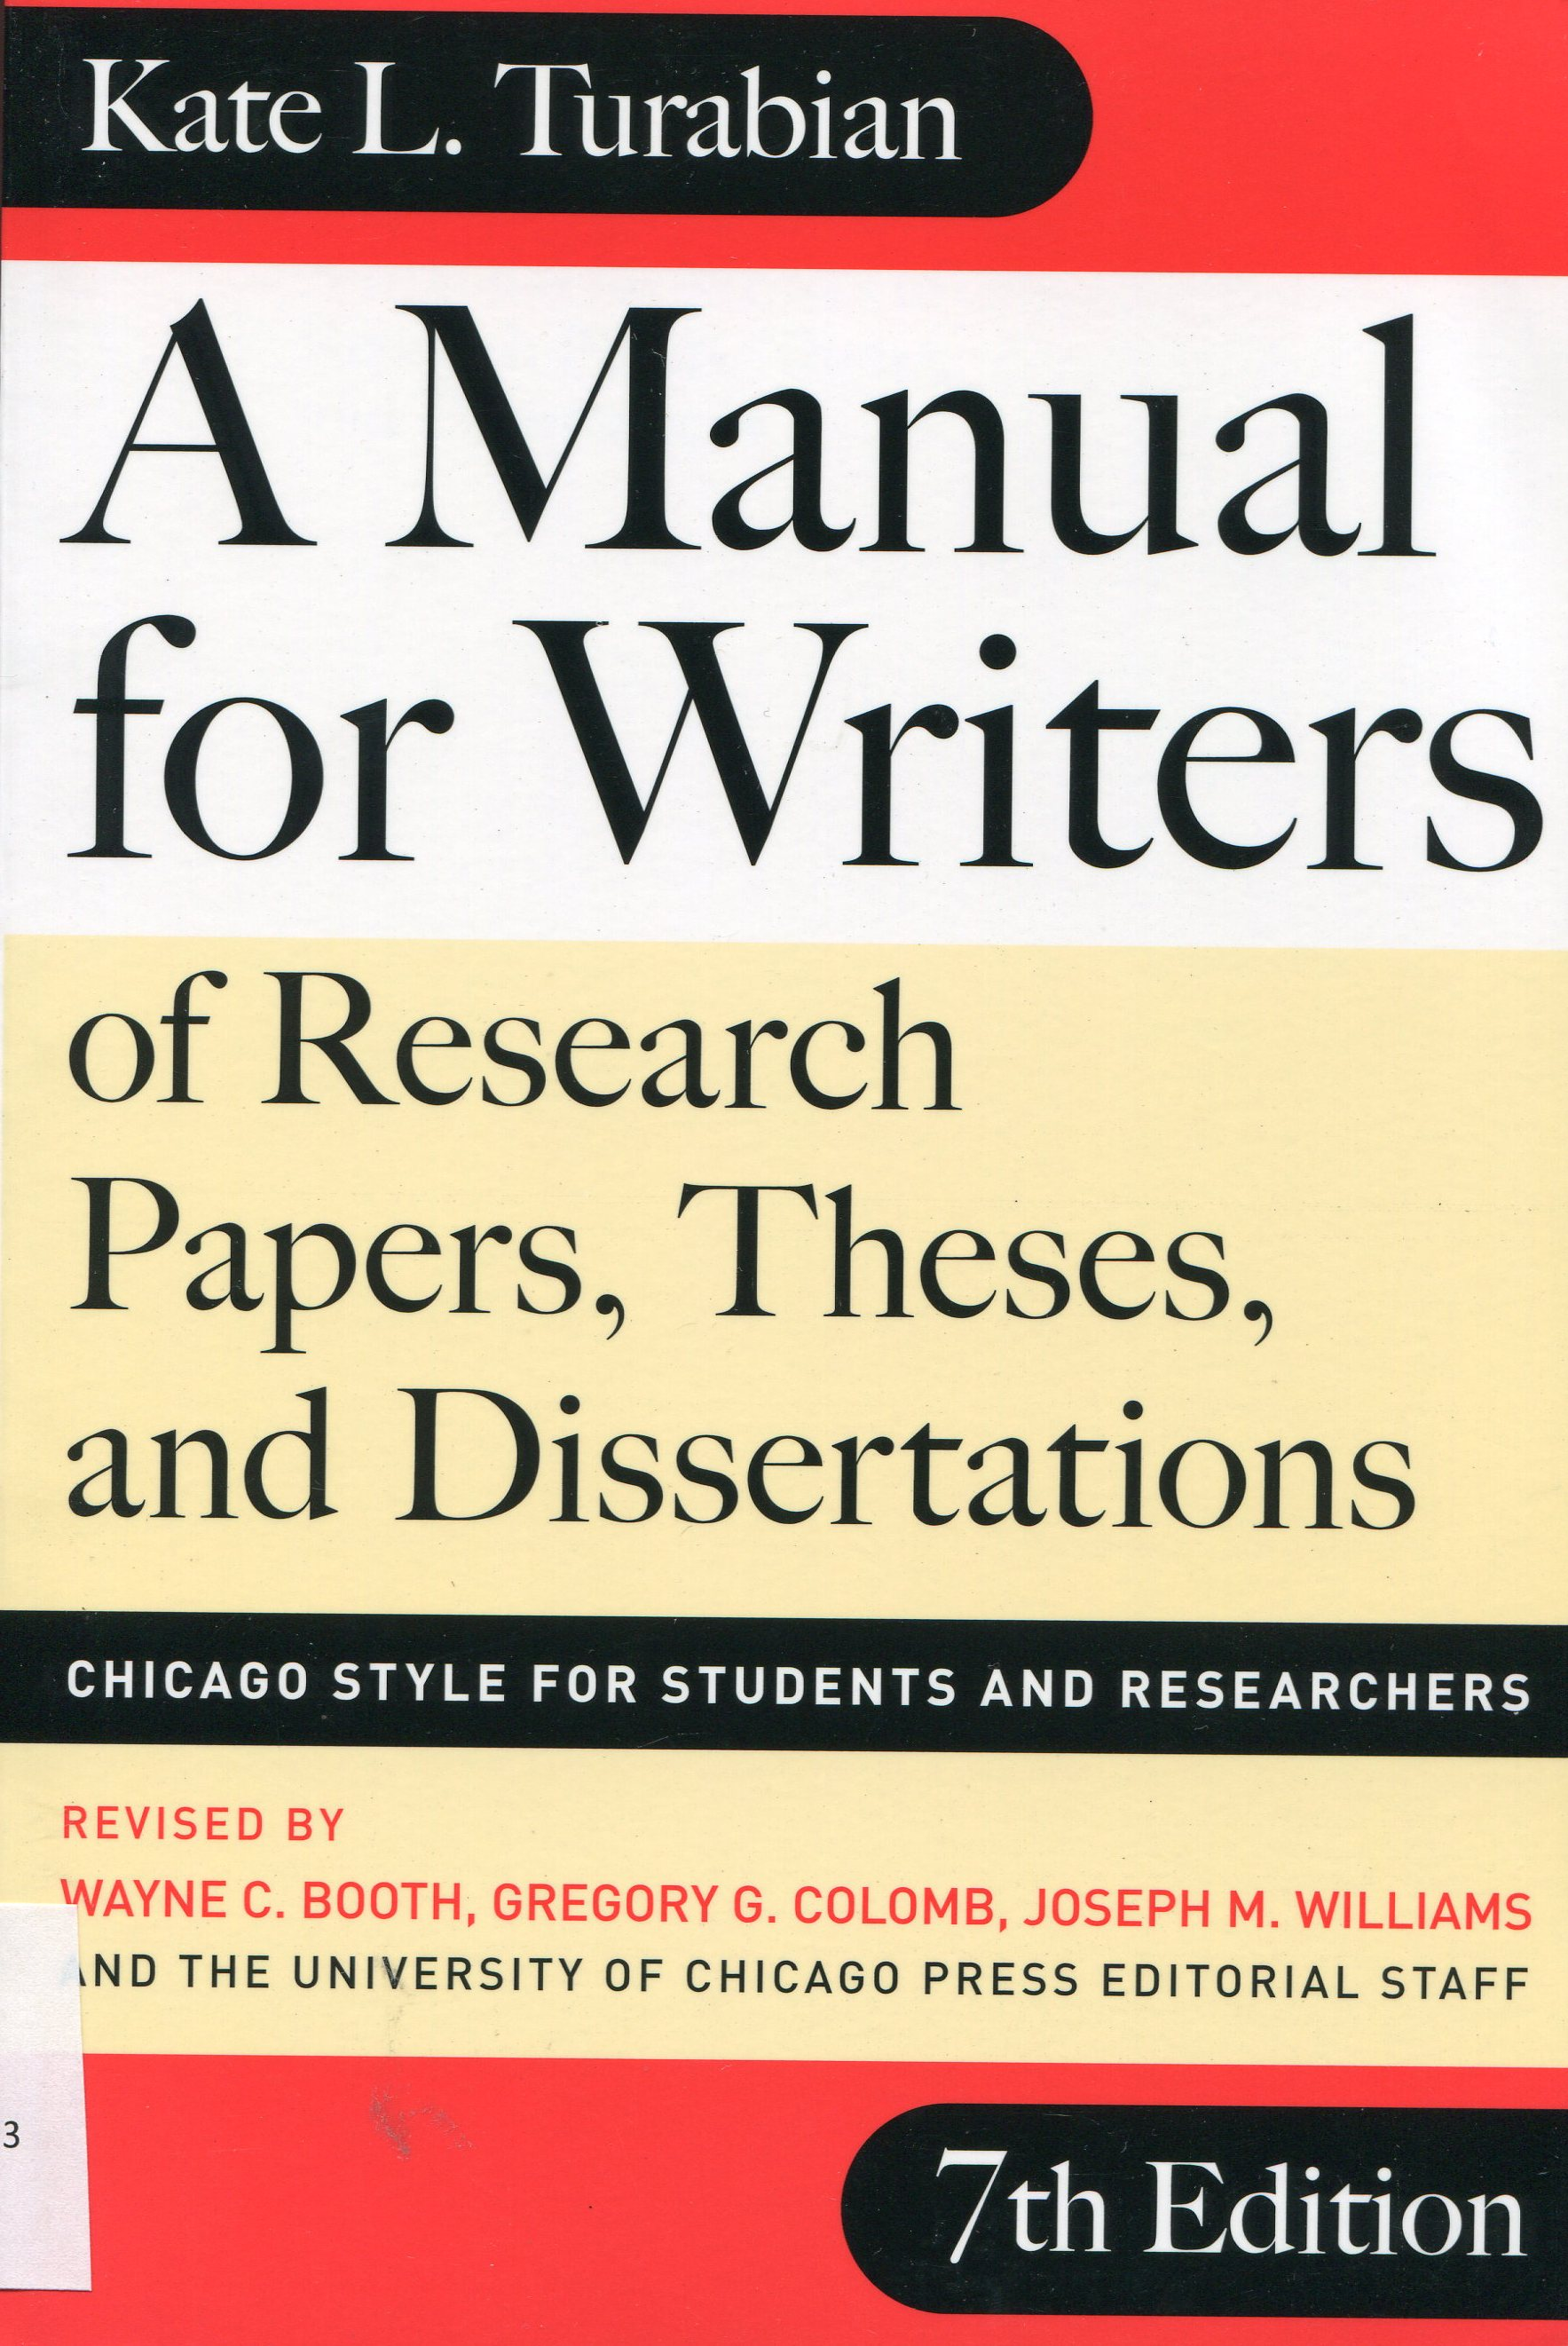 008 Research Paper Img288 Manual For Writers Of Papers Theses And Dissertations By Kate L Sensational A Turabian L. Full